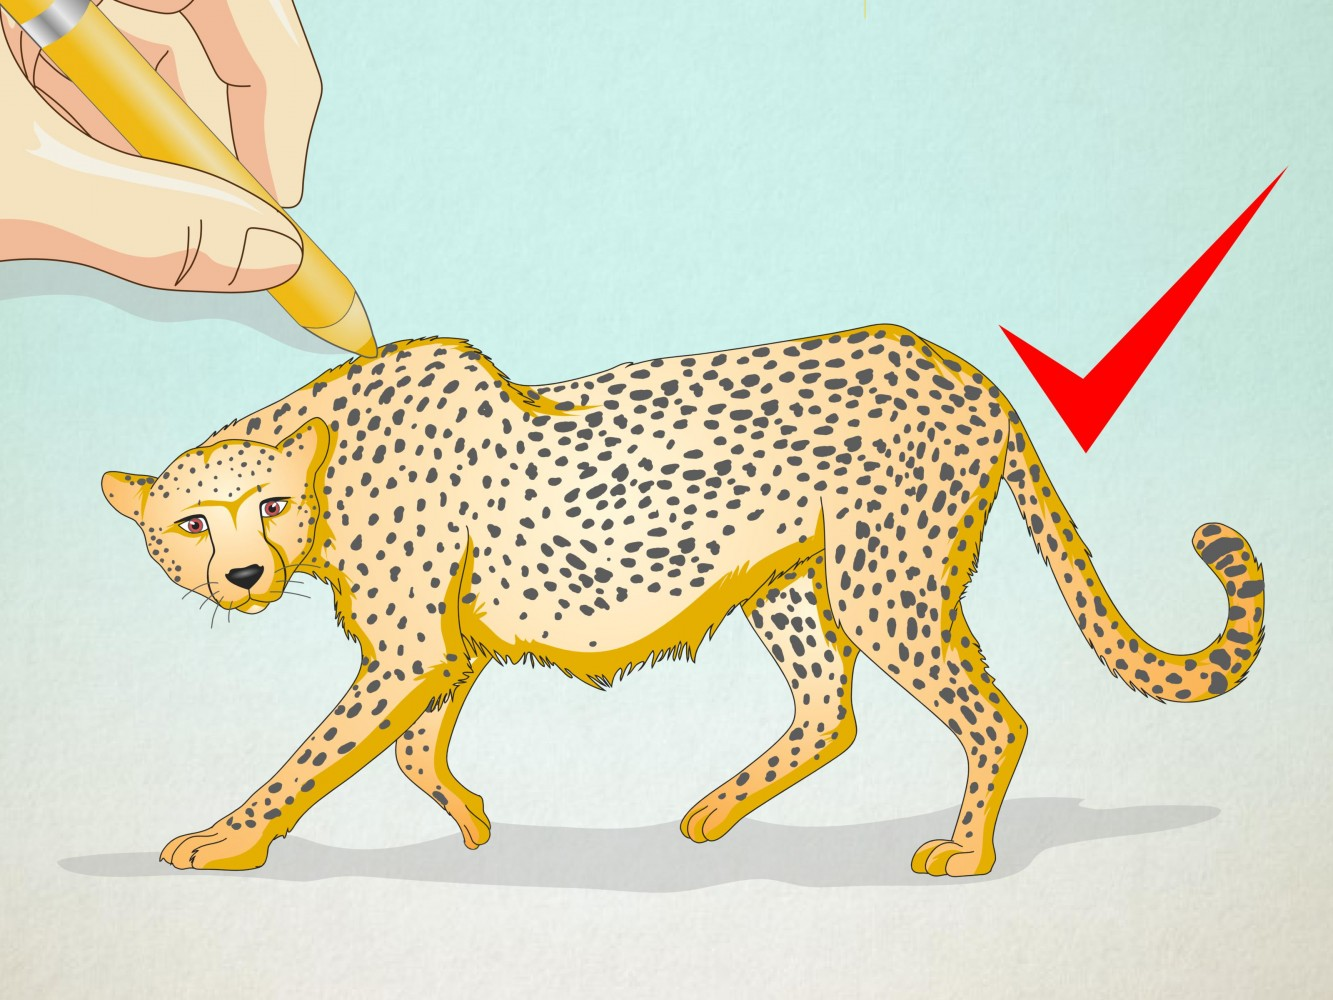 main-image-drowning cheetahs uploaded by lepuppygamer